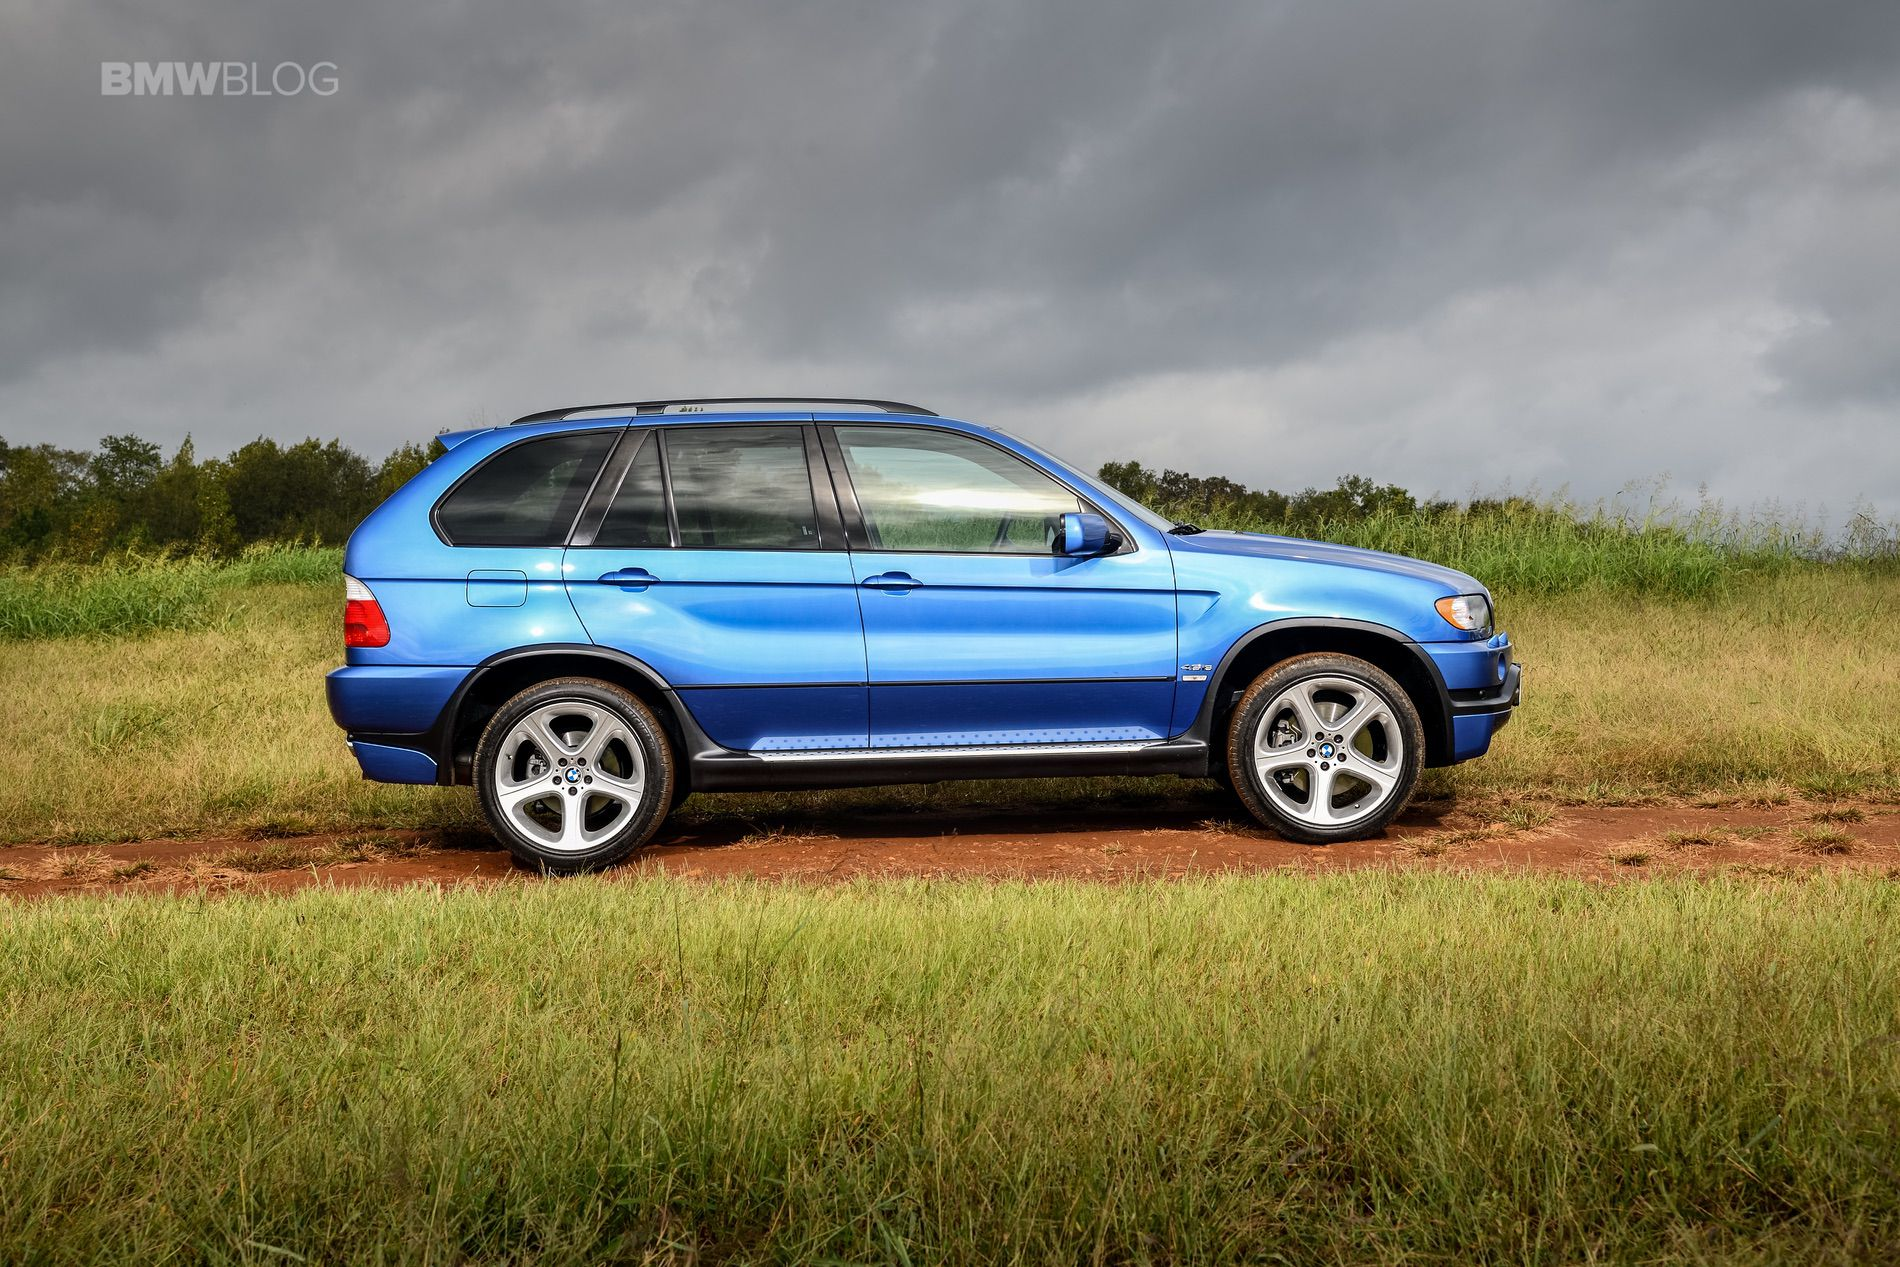 BMW X5 first generation 33